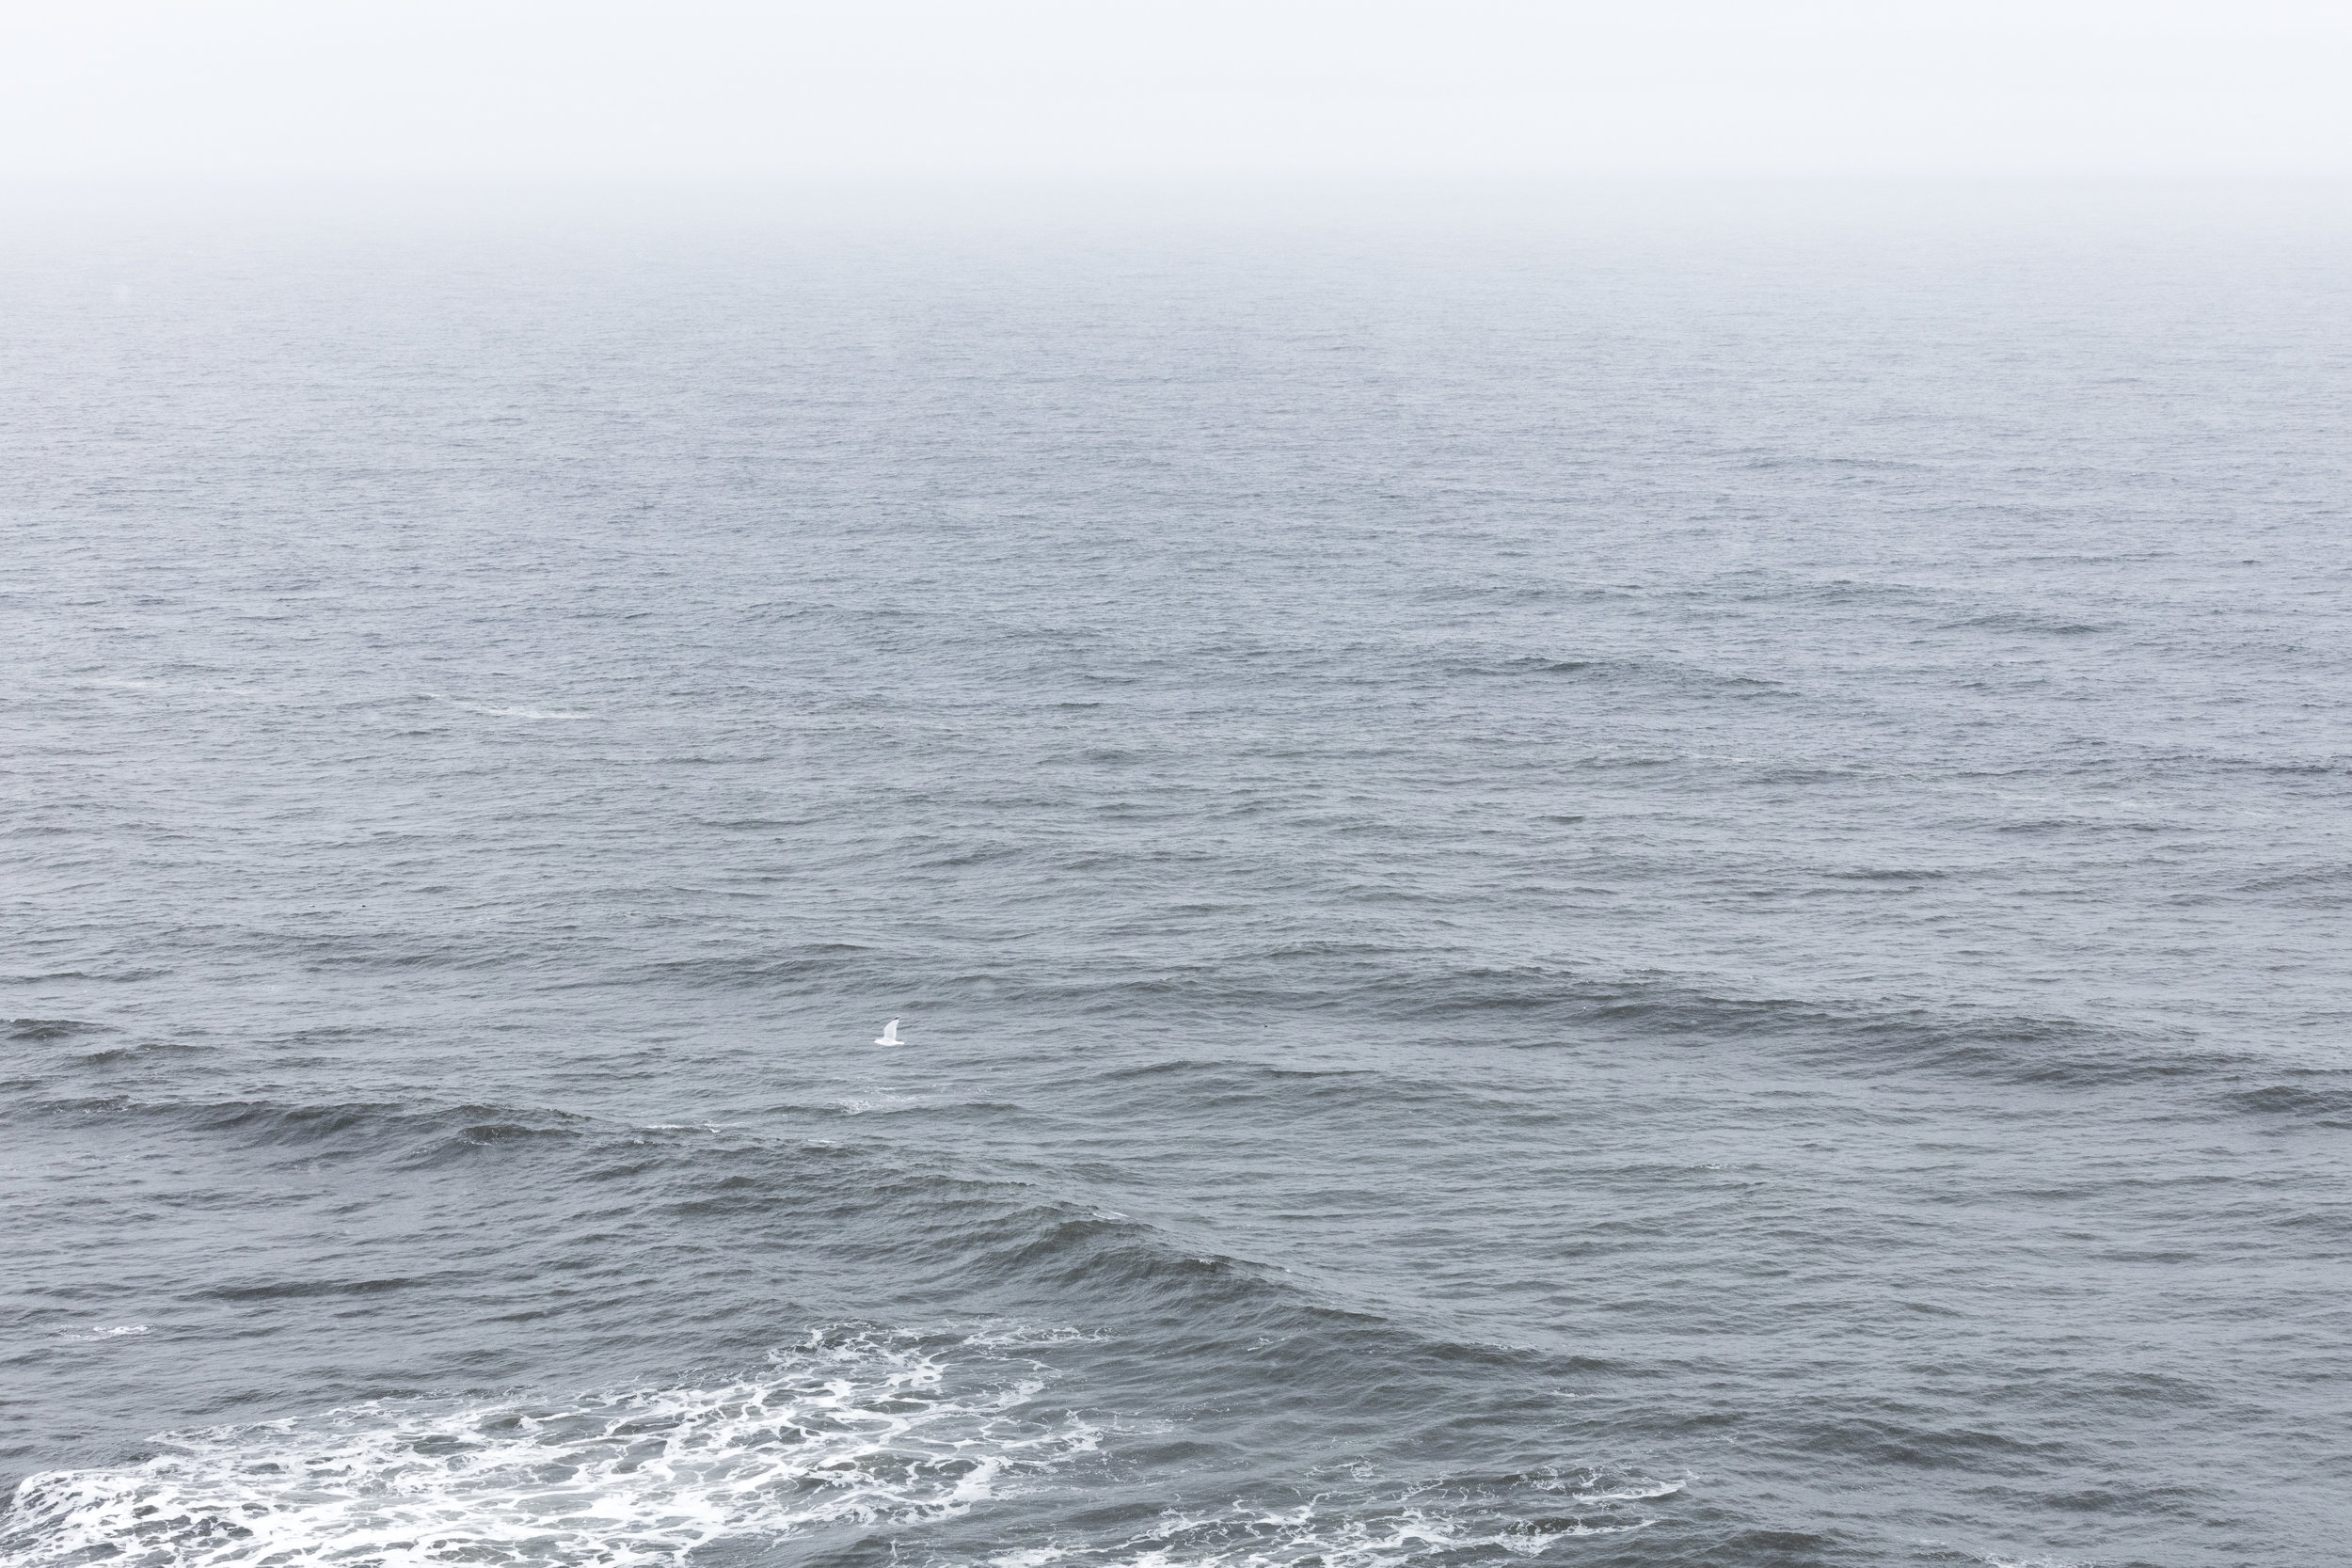 An arctic Tern flies over the swaying ocean | East Iceland - Faune